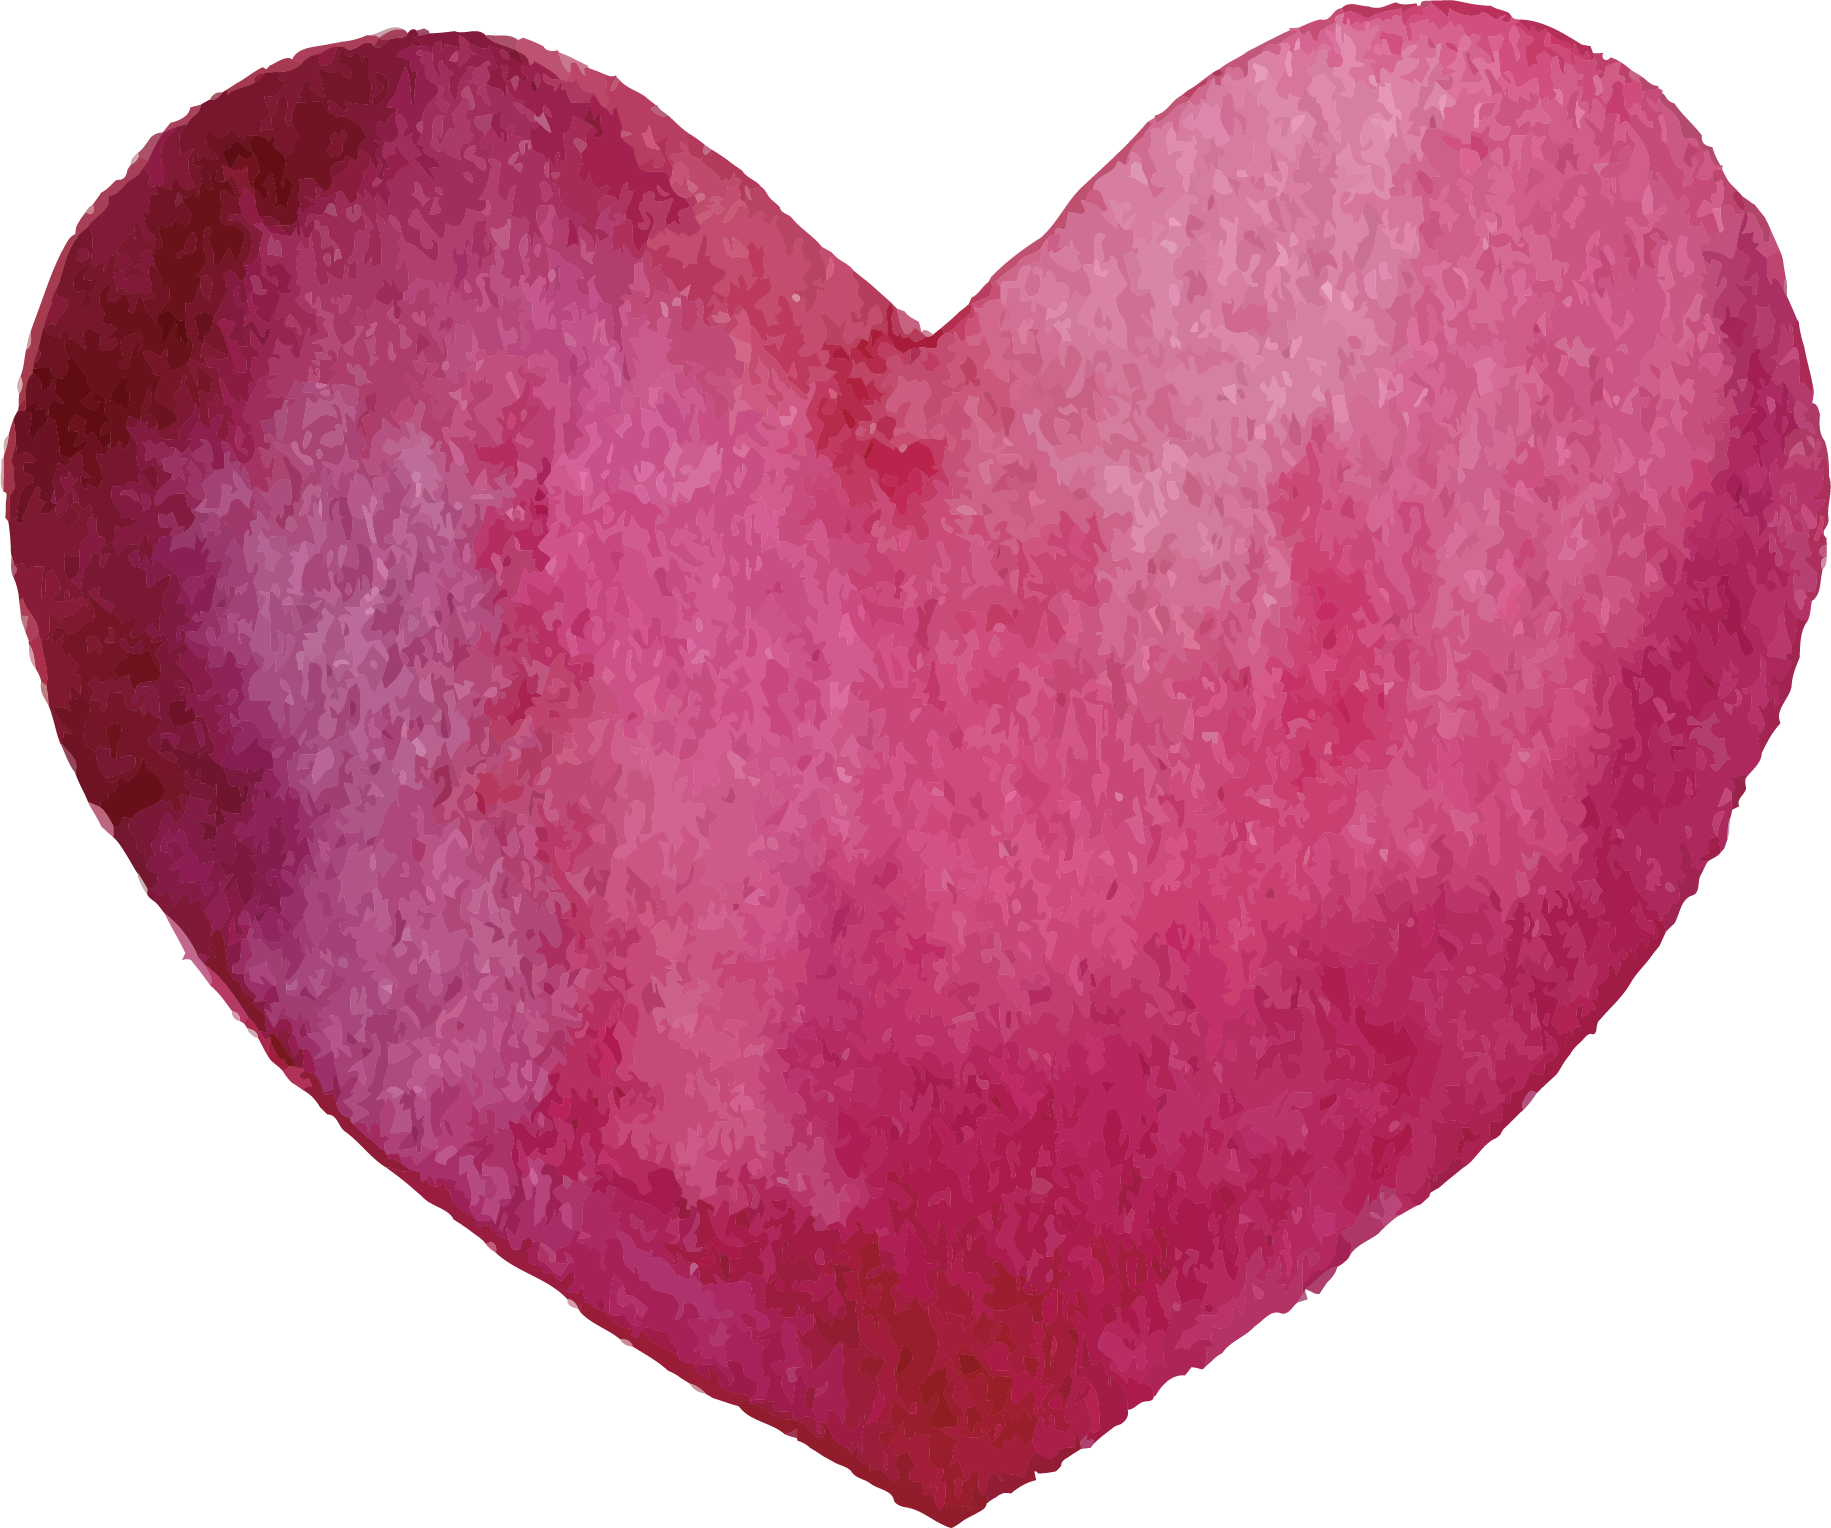 Thankful heart clipart jpg Pink Heart Drawing at GetDrawings.com | Free for personal use Pink ... jpg